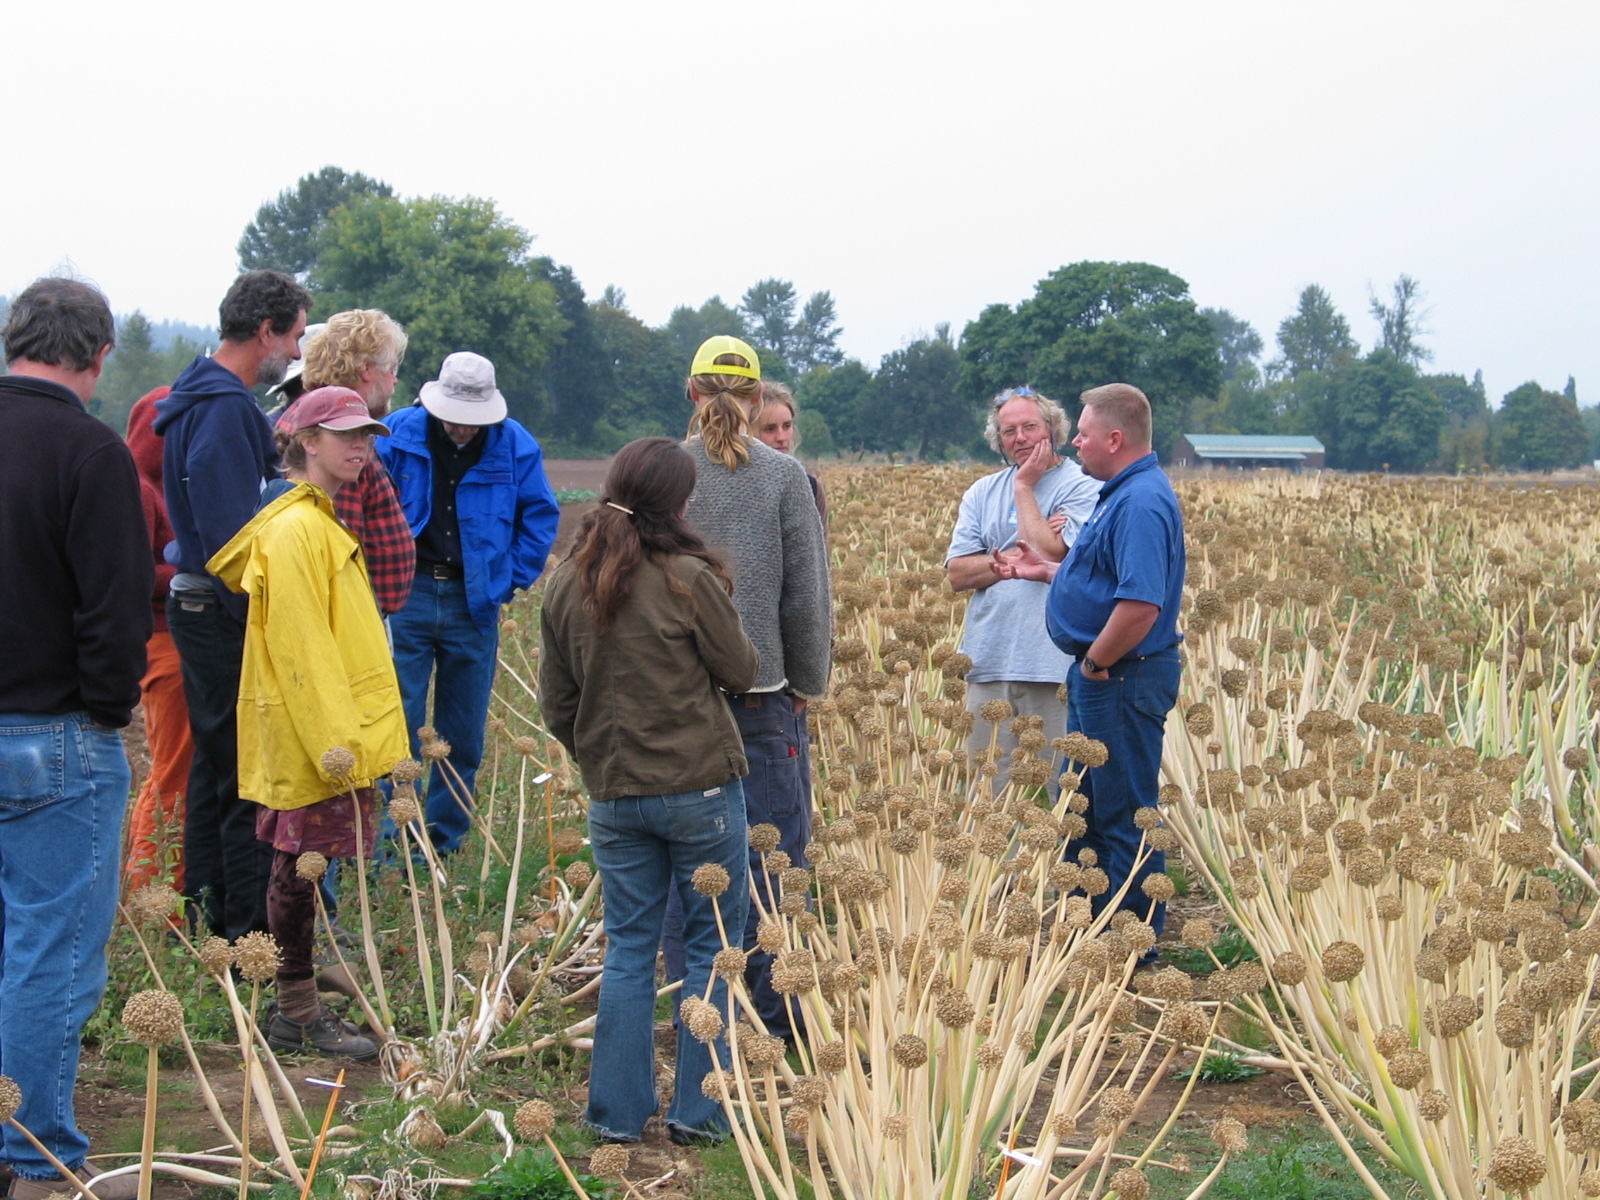 Joel Reiten leads organic onion seed field day at Bejo Seeds, Corvallis, Oregon. Photo credit: Micaela Colley